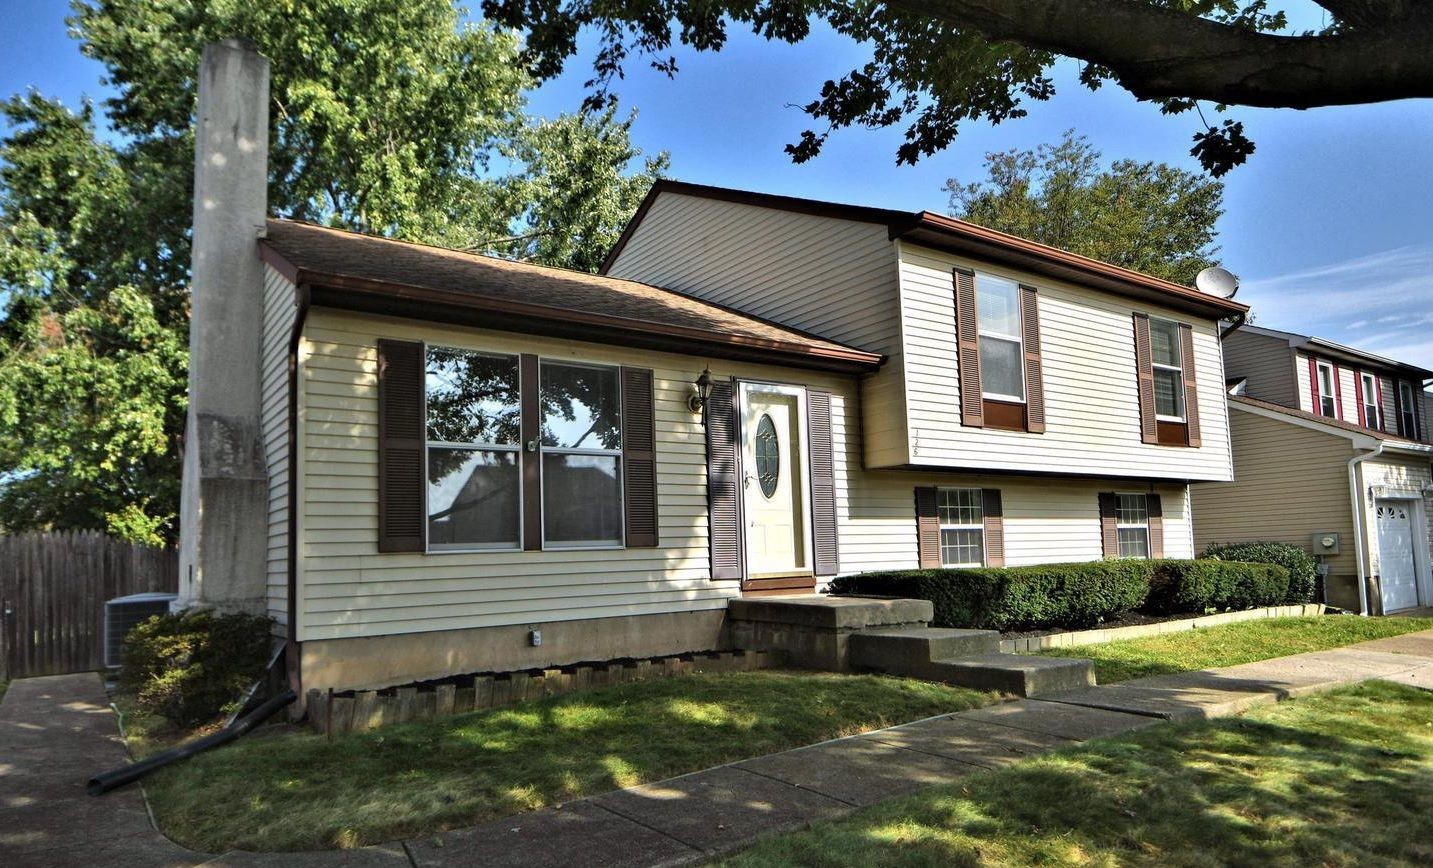 Renovated 3-Bedroom House In Morrisville